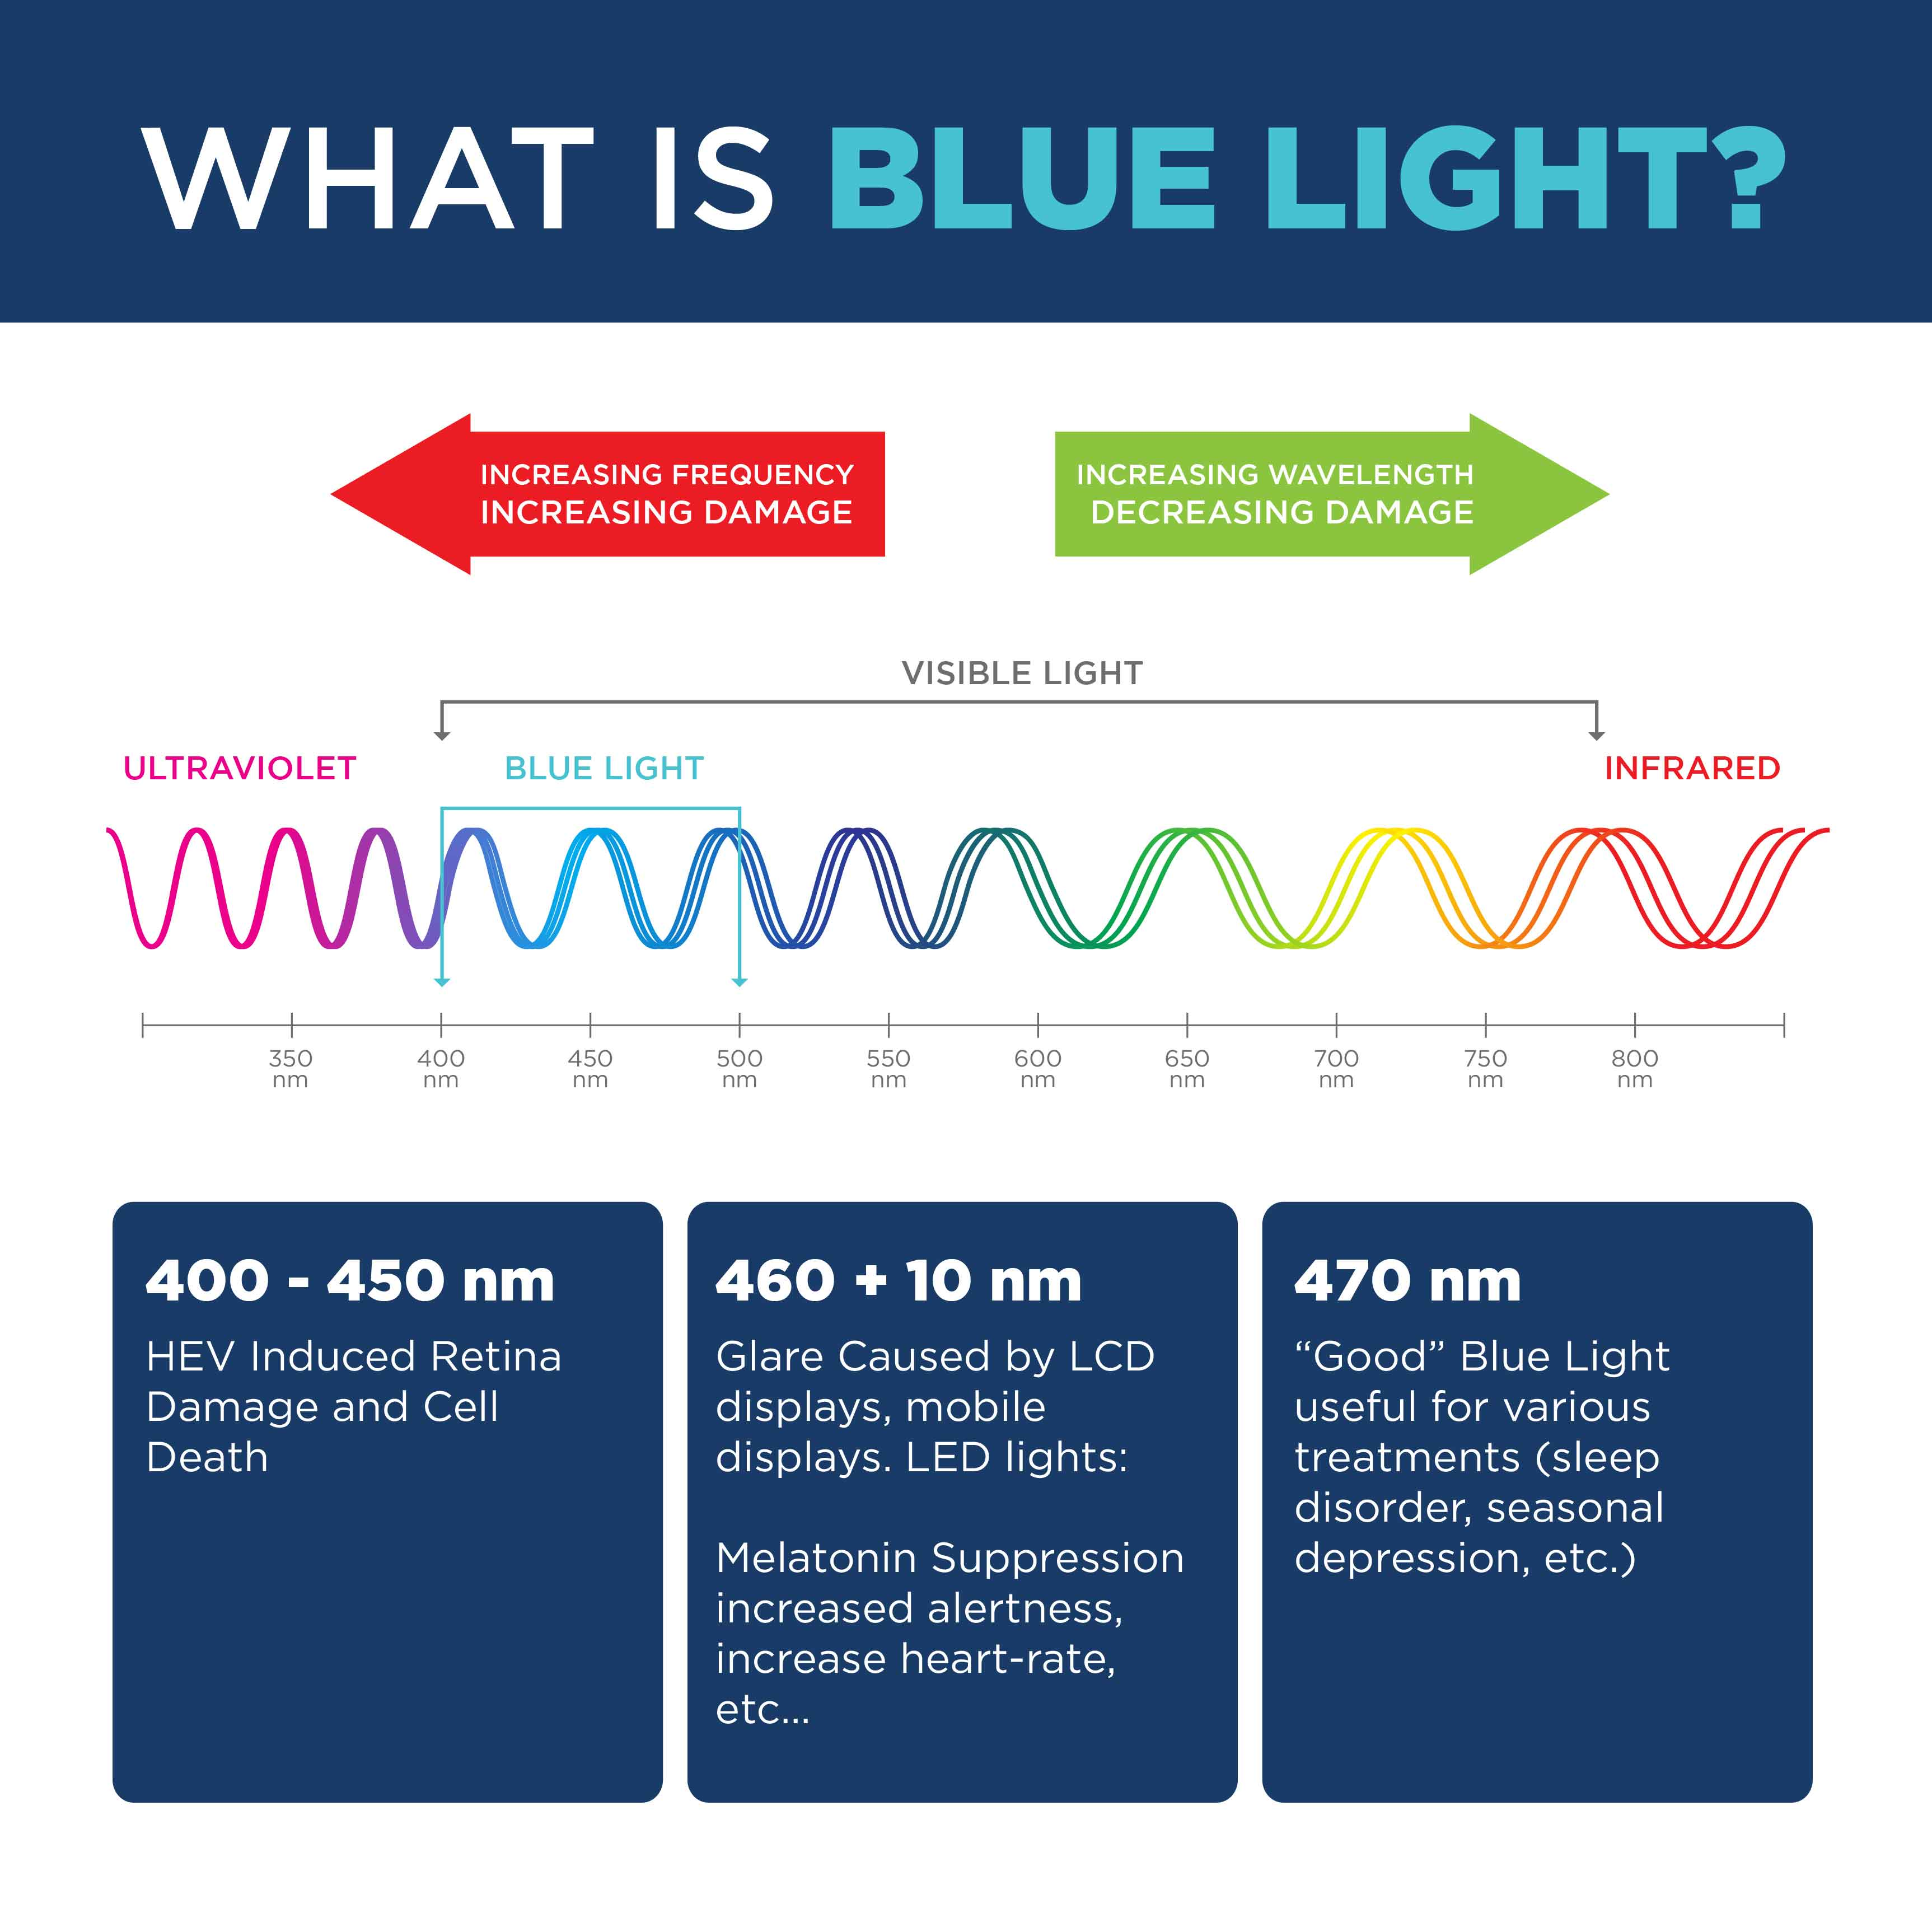 What is Blue Light